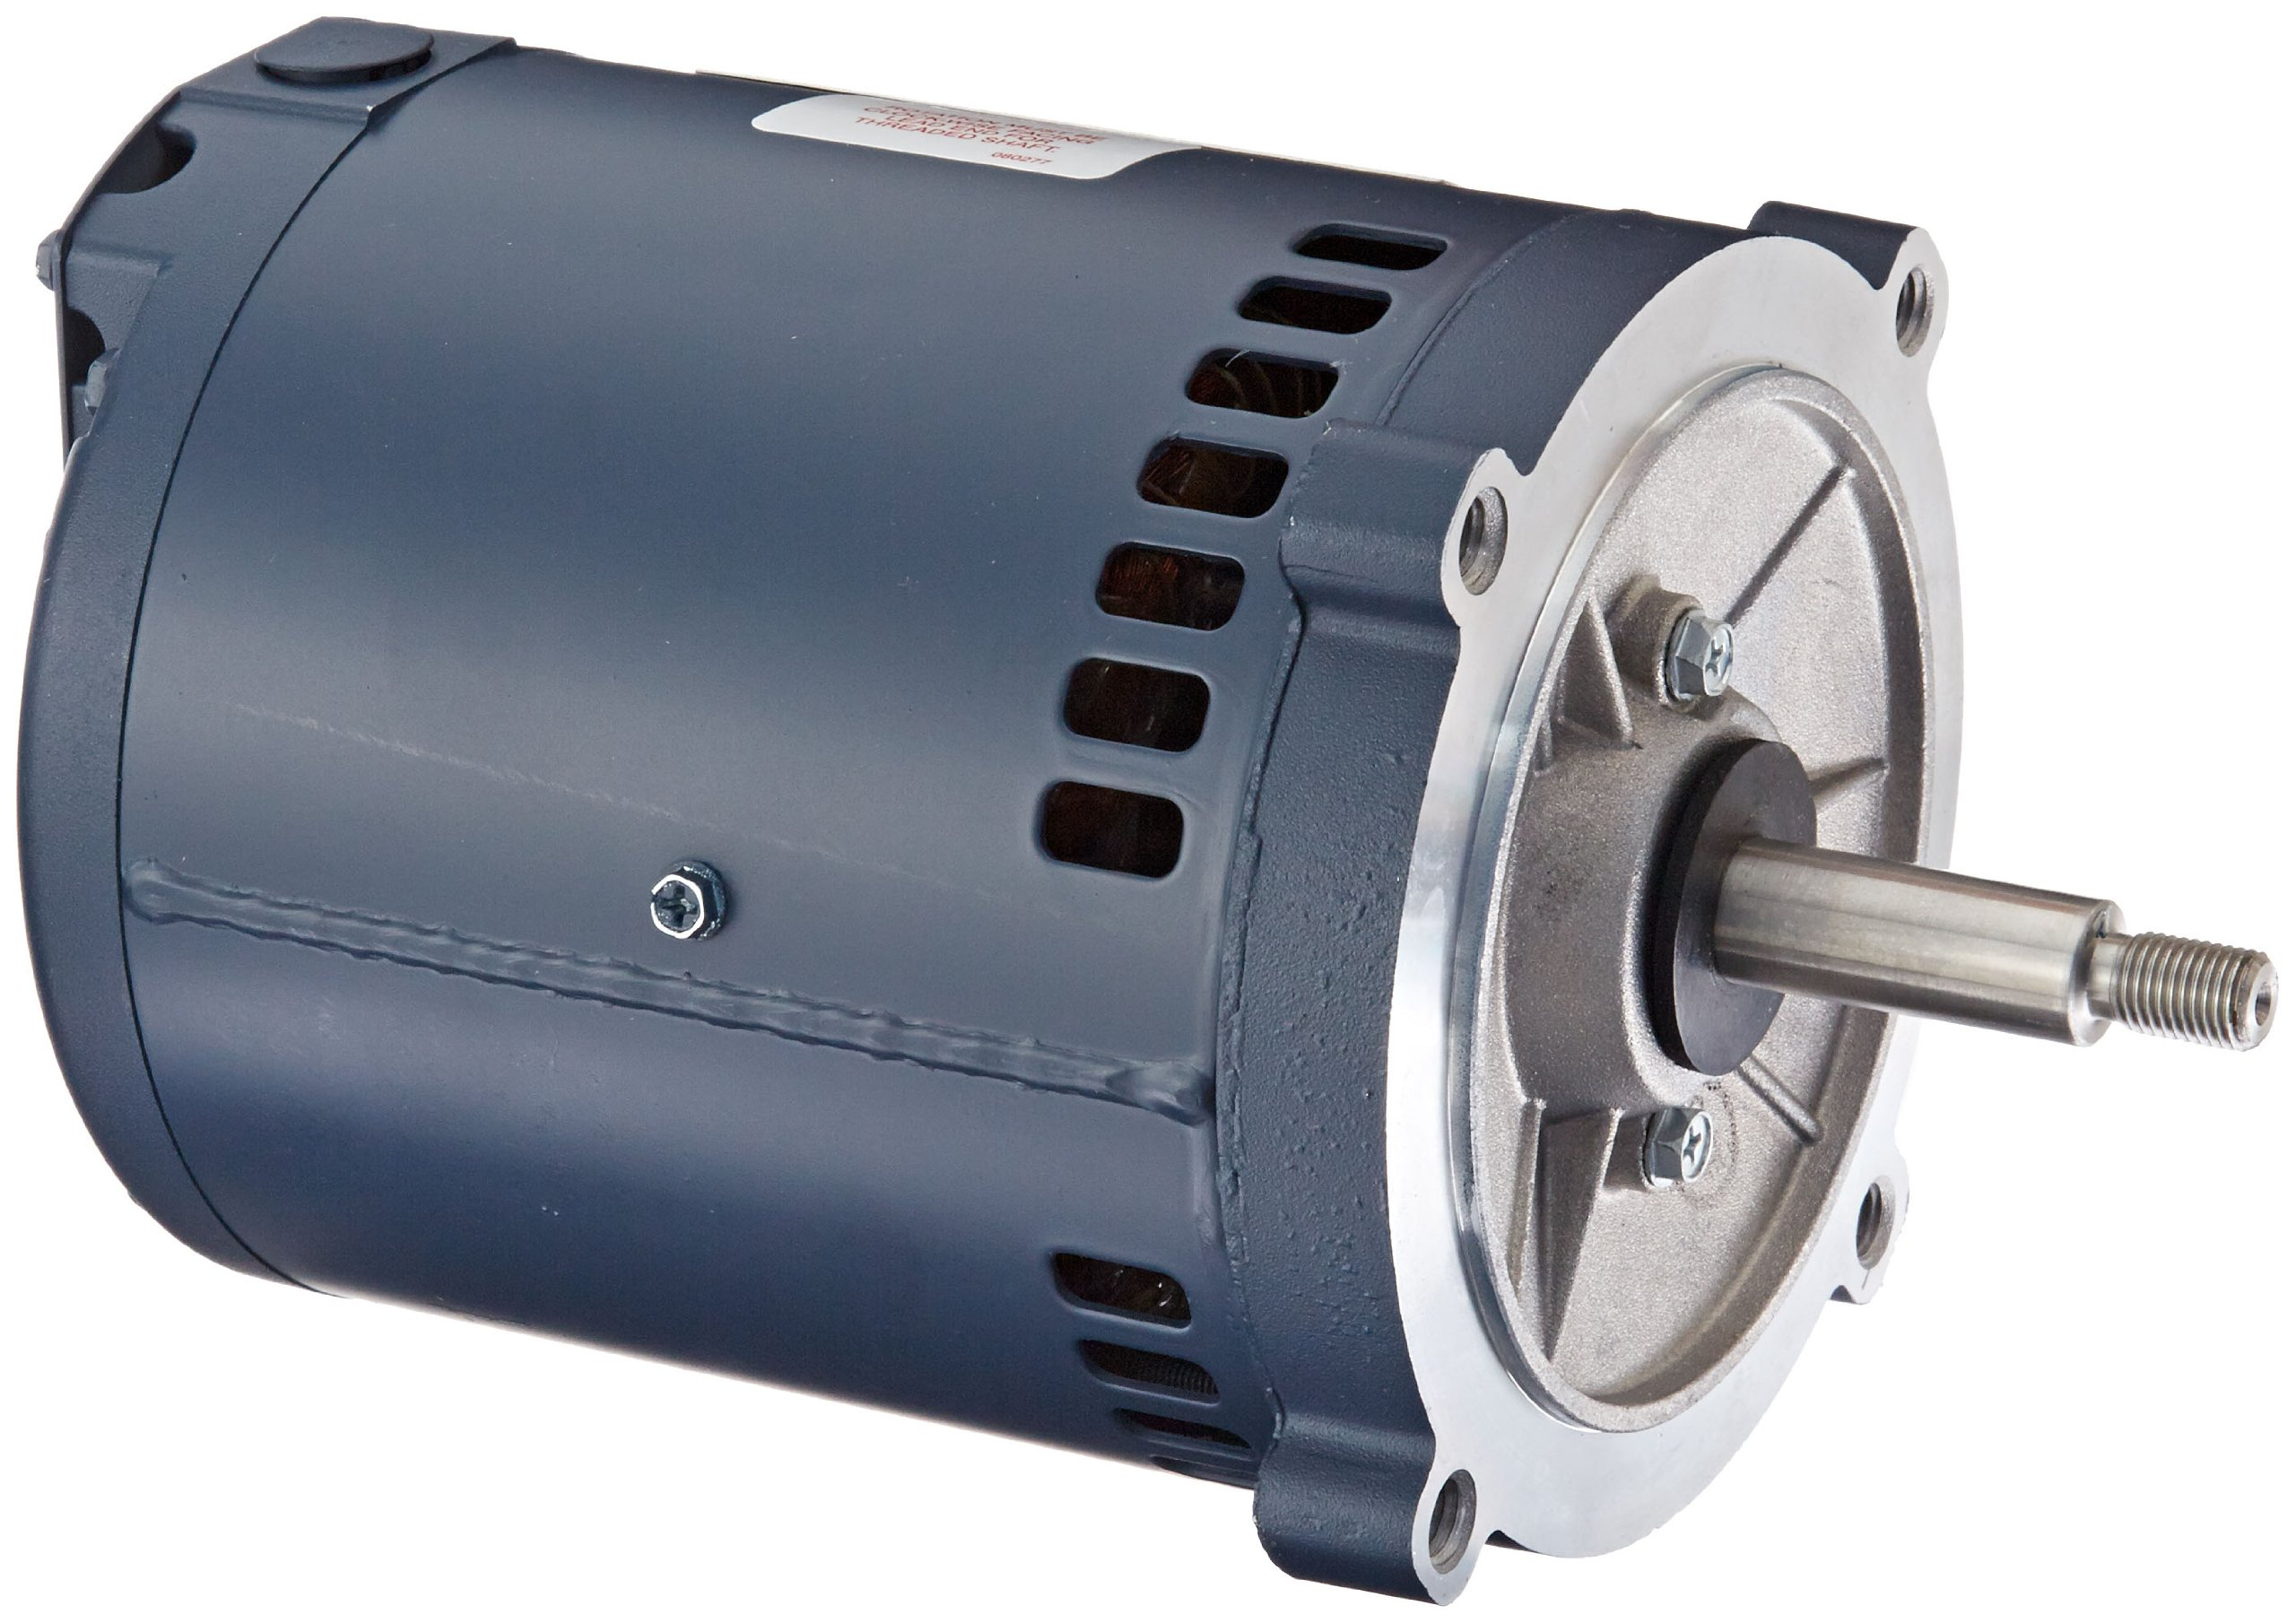 Leeson 102198.00 Jet Pump Motor, 3 Phase, S56J Frame, Round Mounting, 1/2HP, 3600 RPM, 208-230/460V Voltage, 60Hz Fequency